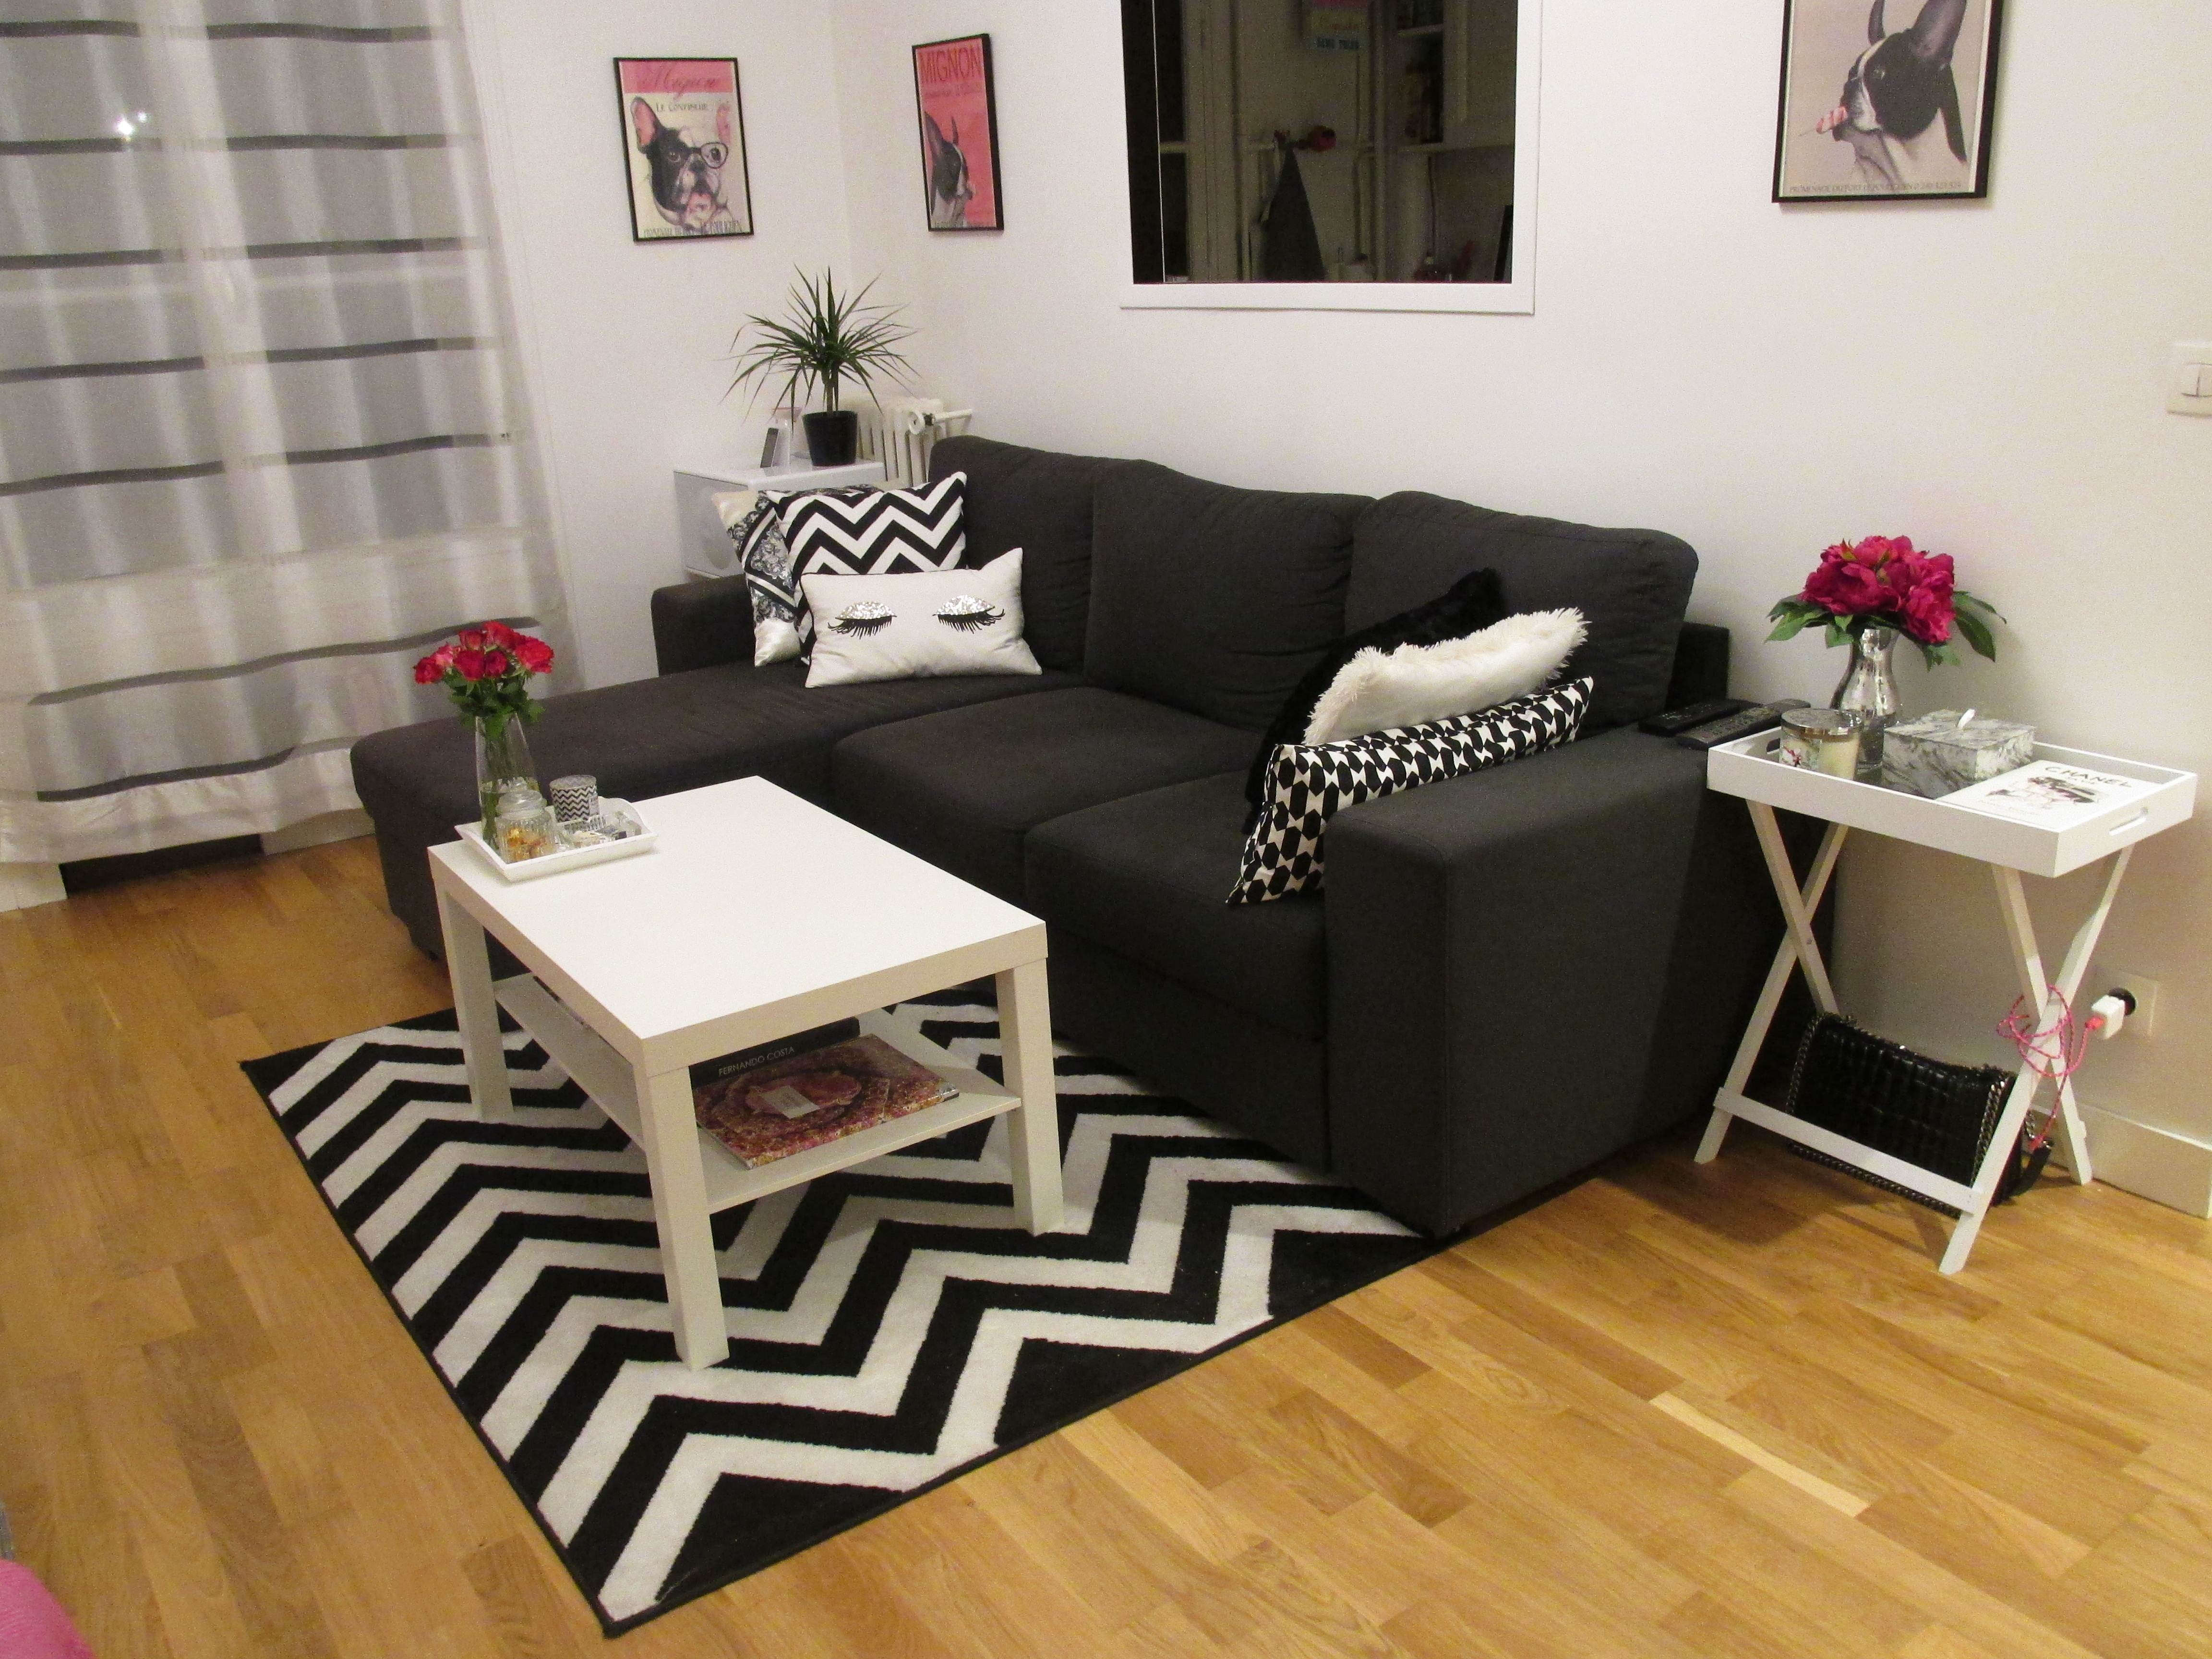 fabulous canap rosy alina table basse ika tapis webtapisfr coussins gauche droite forever. Black Bedroom Furniture Sets. Home Design Ideas